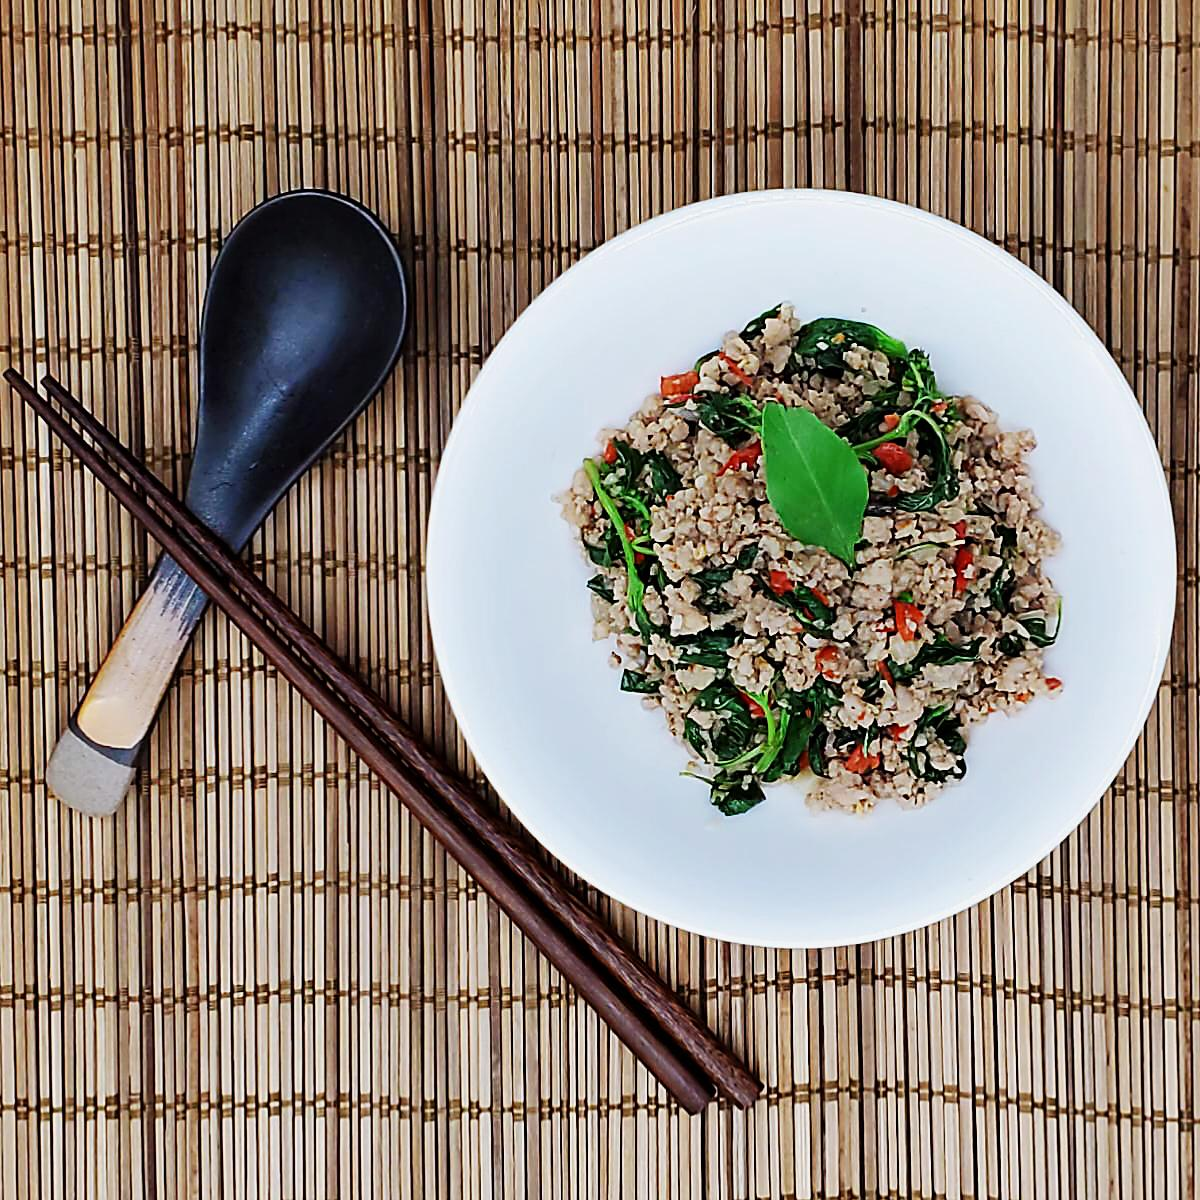 [Phat Kaphrao] Stir-fly Minced Pork with Chili and Sweet Basil